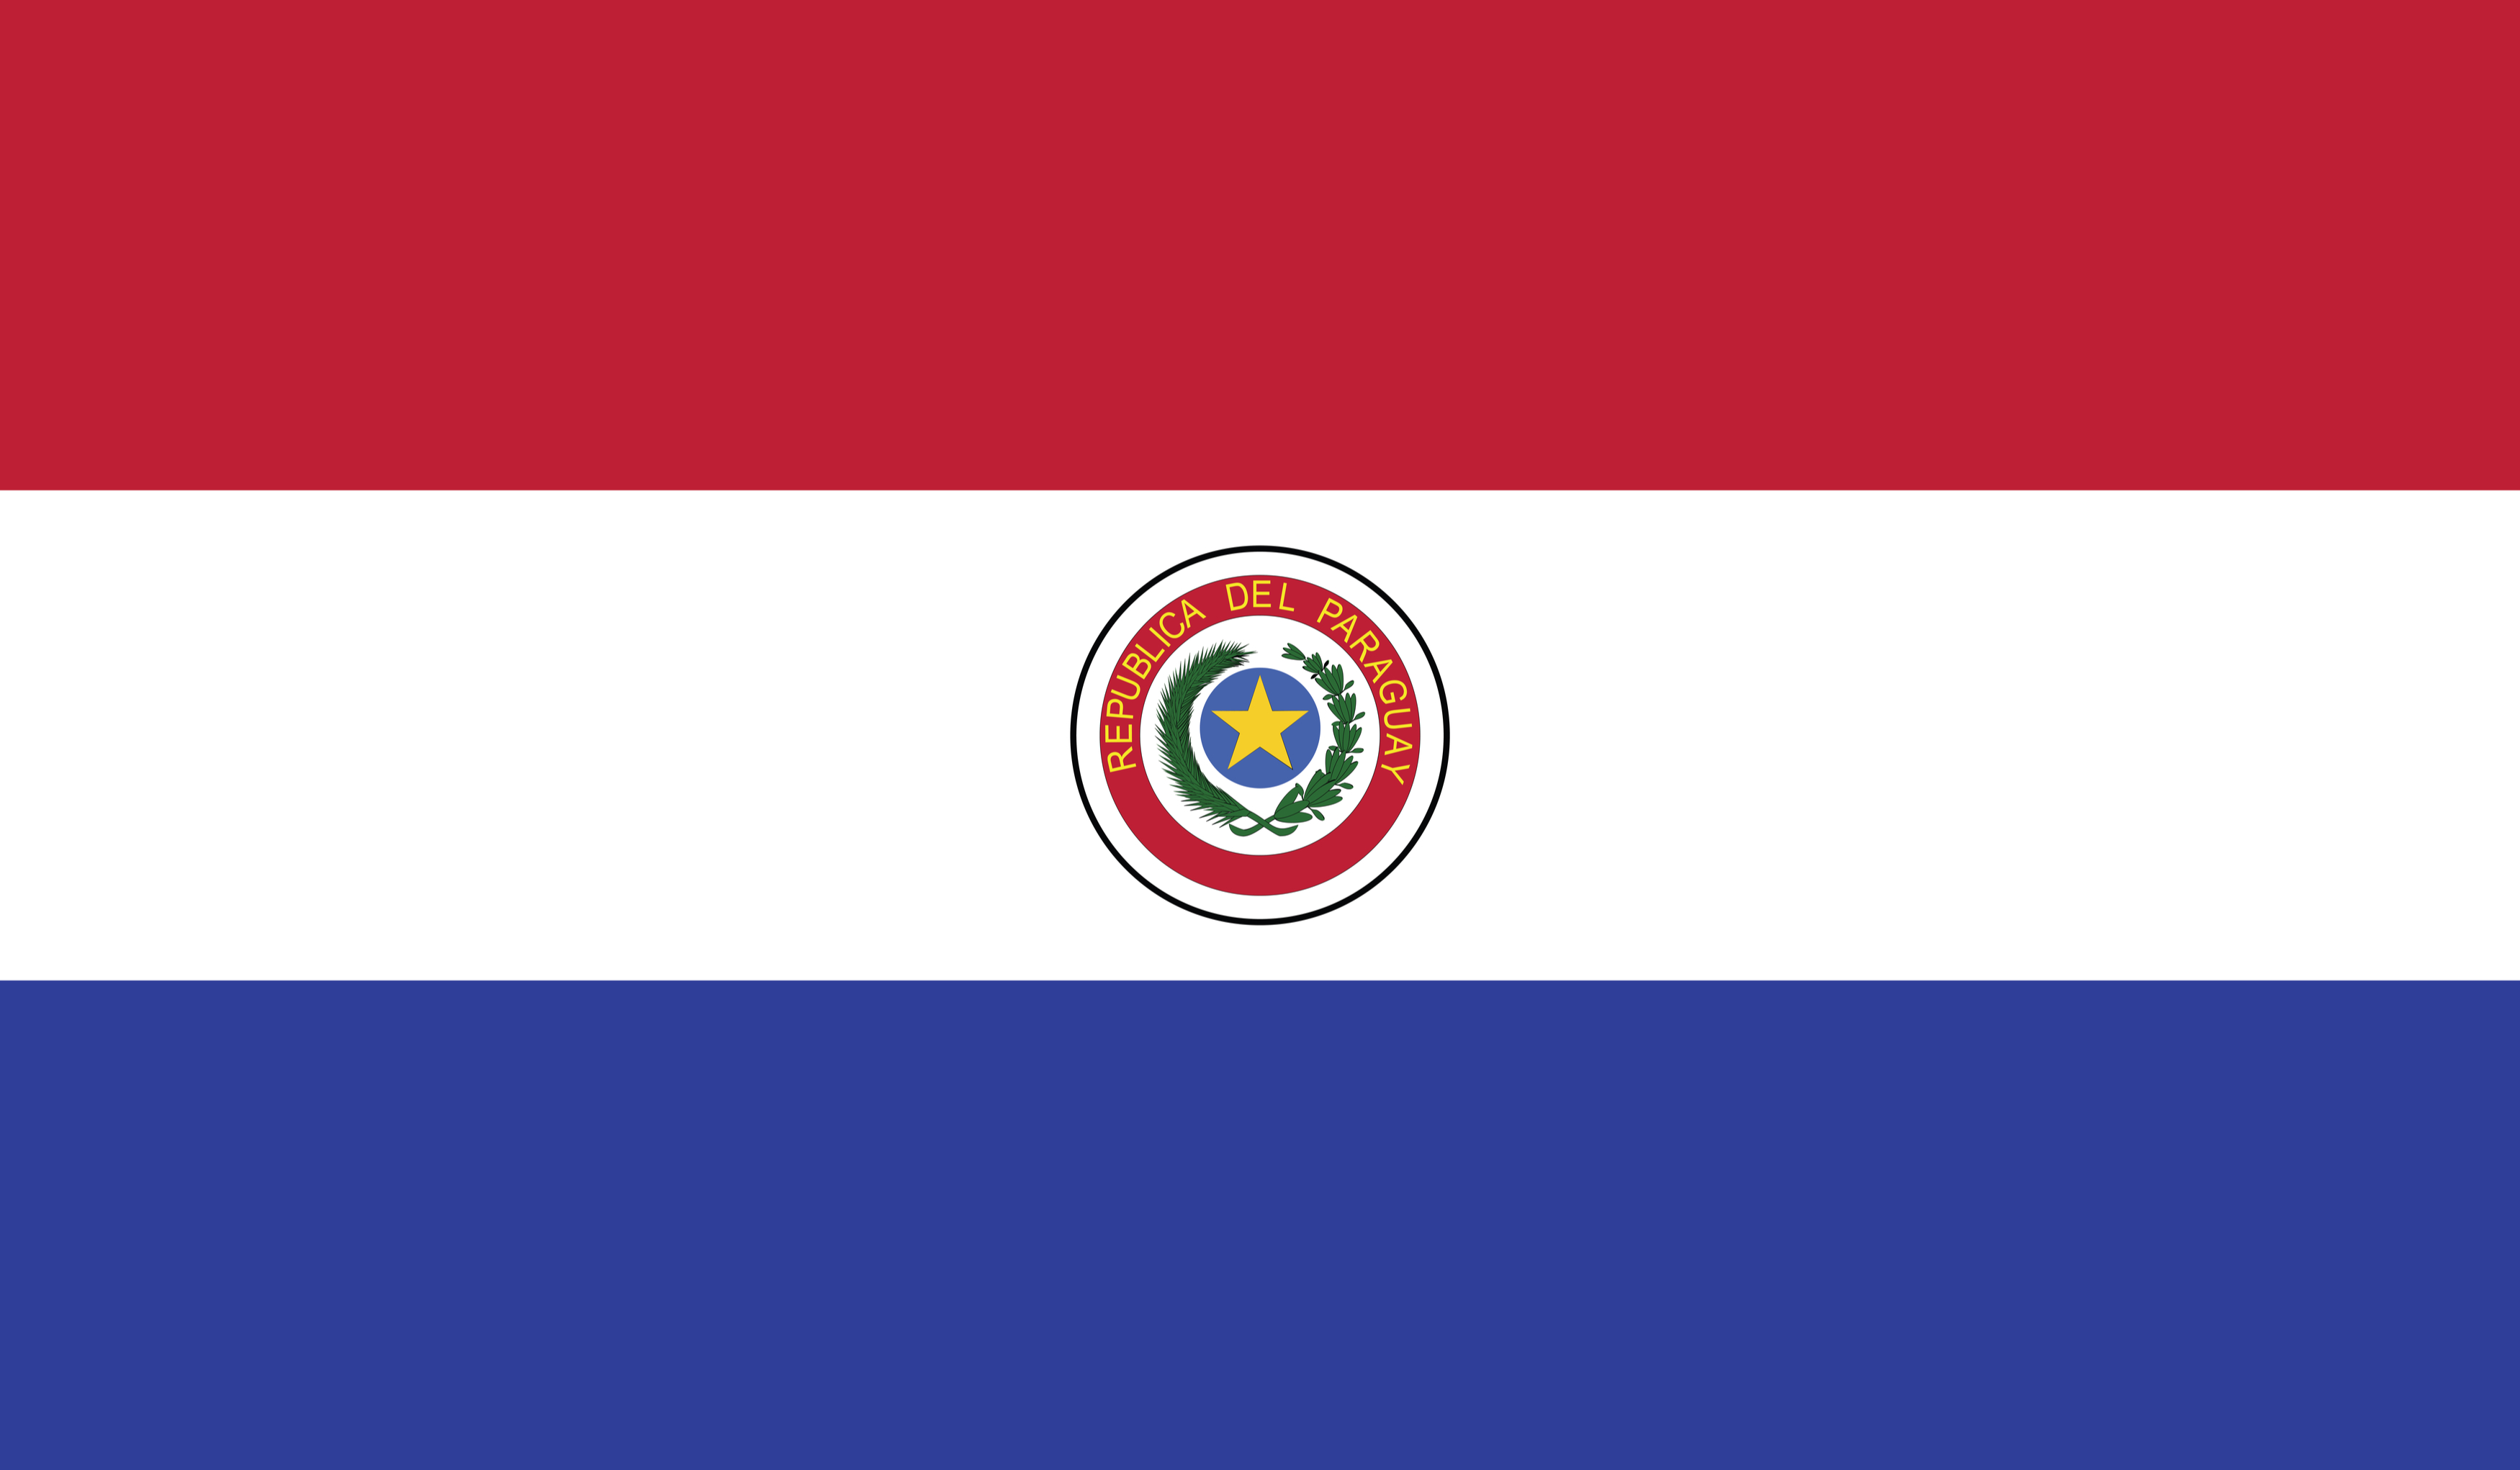 The flag of Paraguay currently in use today.